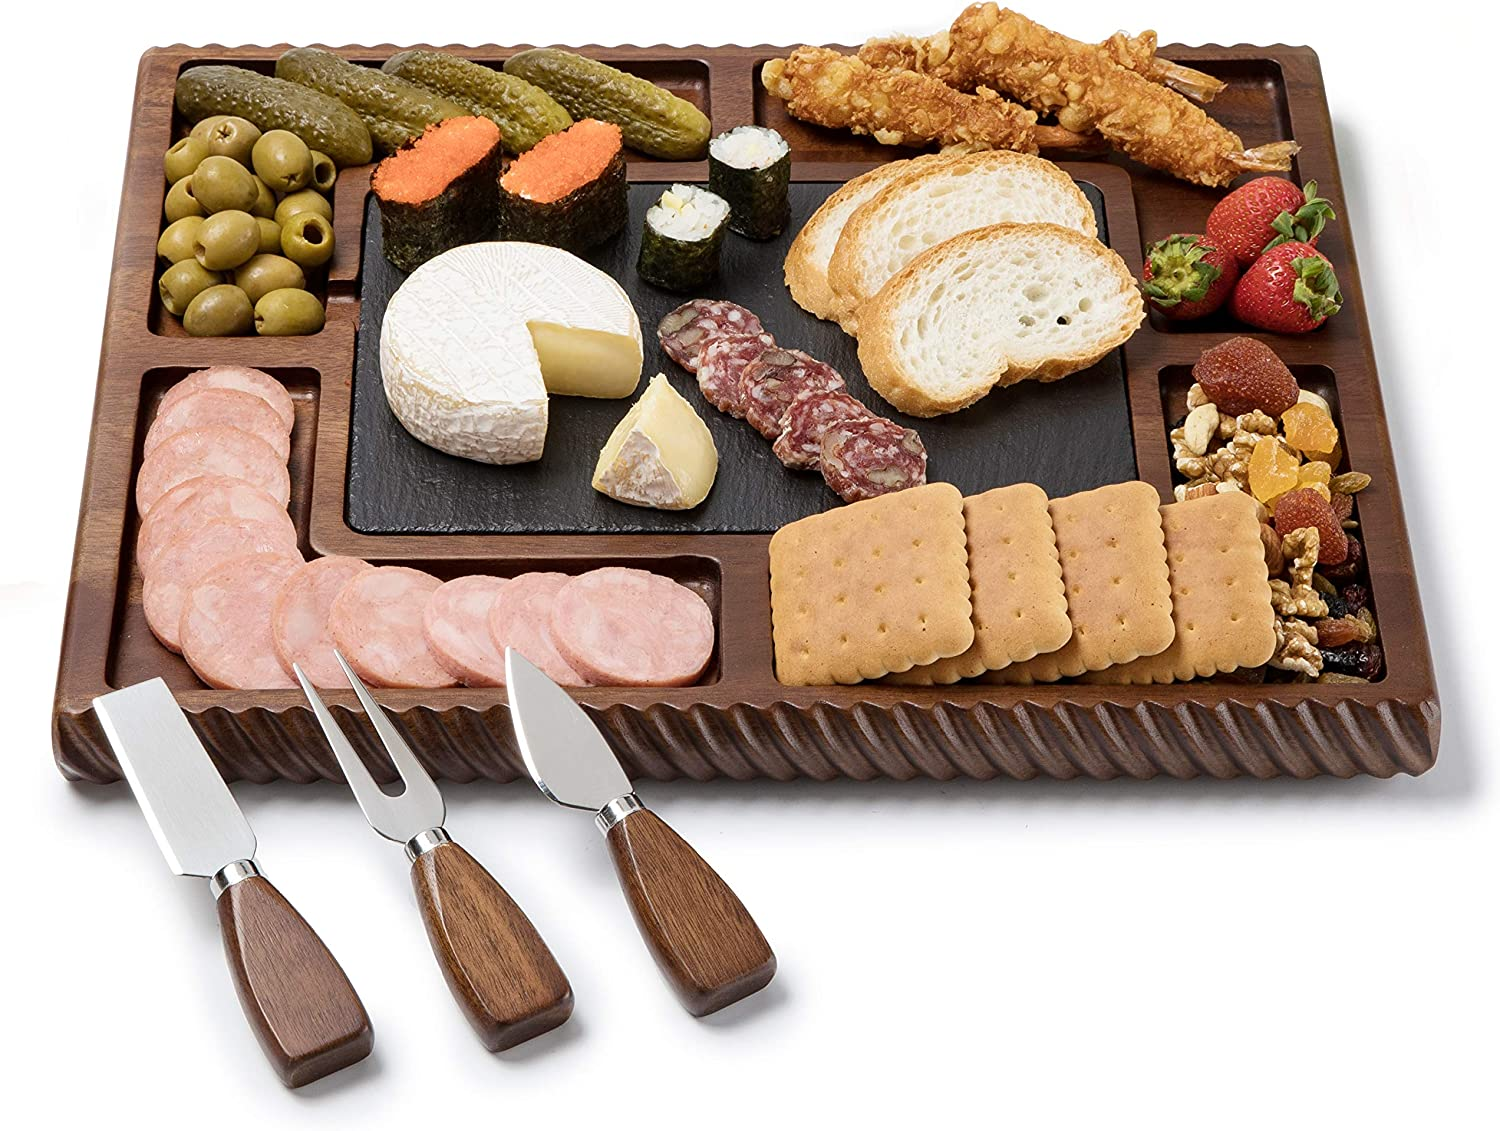 Shanik Upgraded Max 79% OFF Acacia Cheese Board Square Safety and trust Set Shaped Charcuter